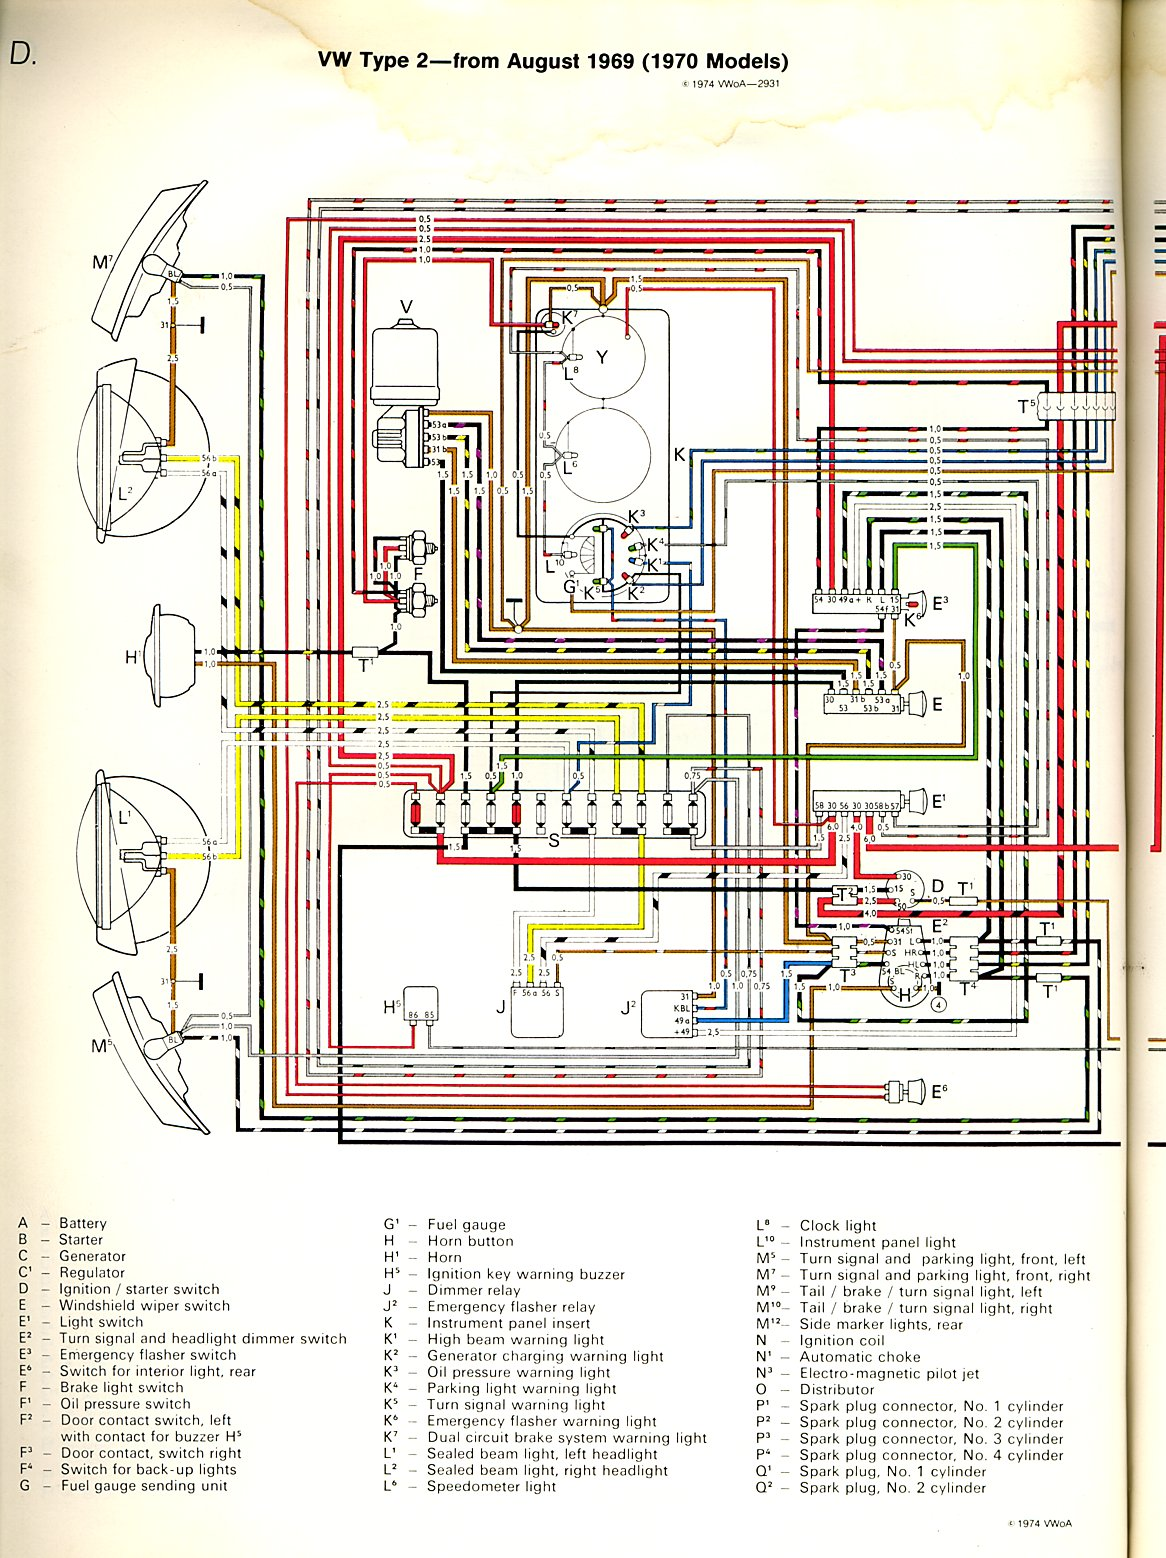 thesamba com type 2 wiring diagrams rh thesamba com 80 VW Van 65 VW Van